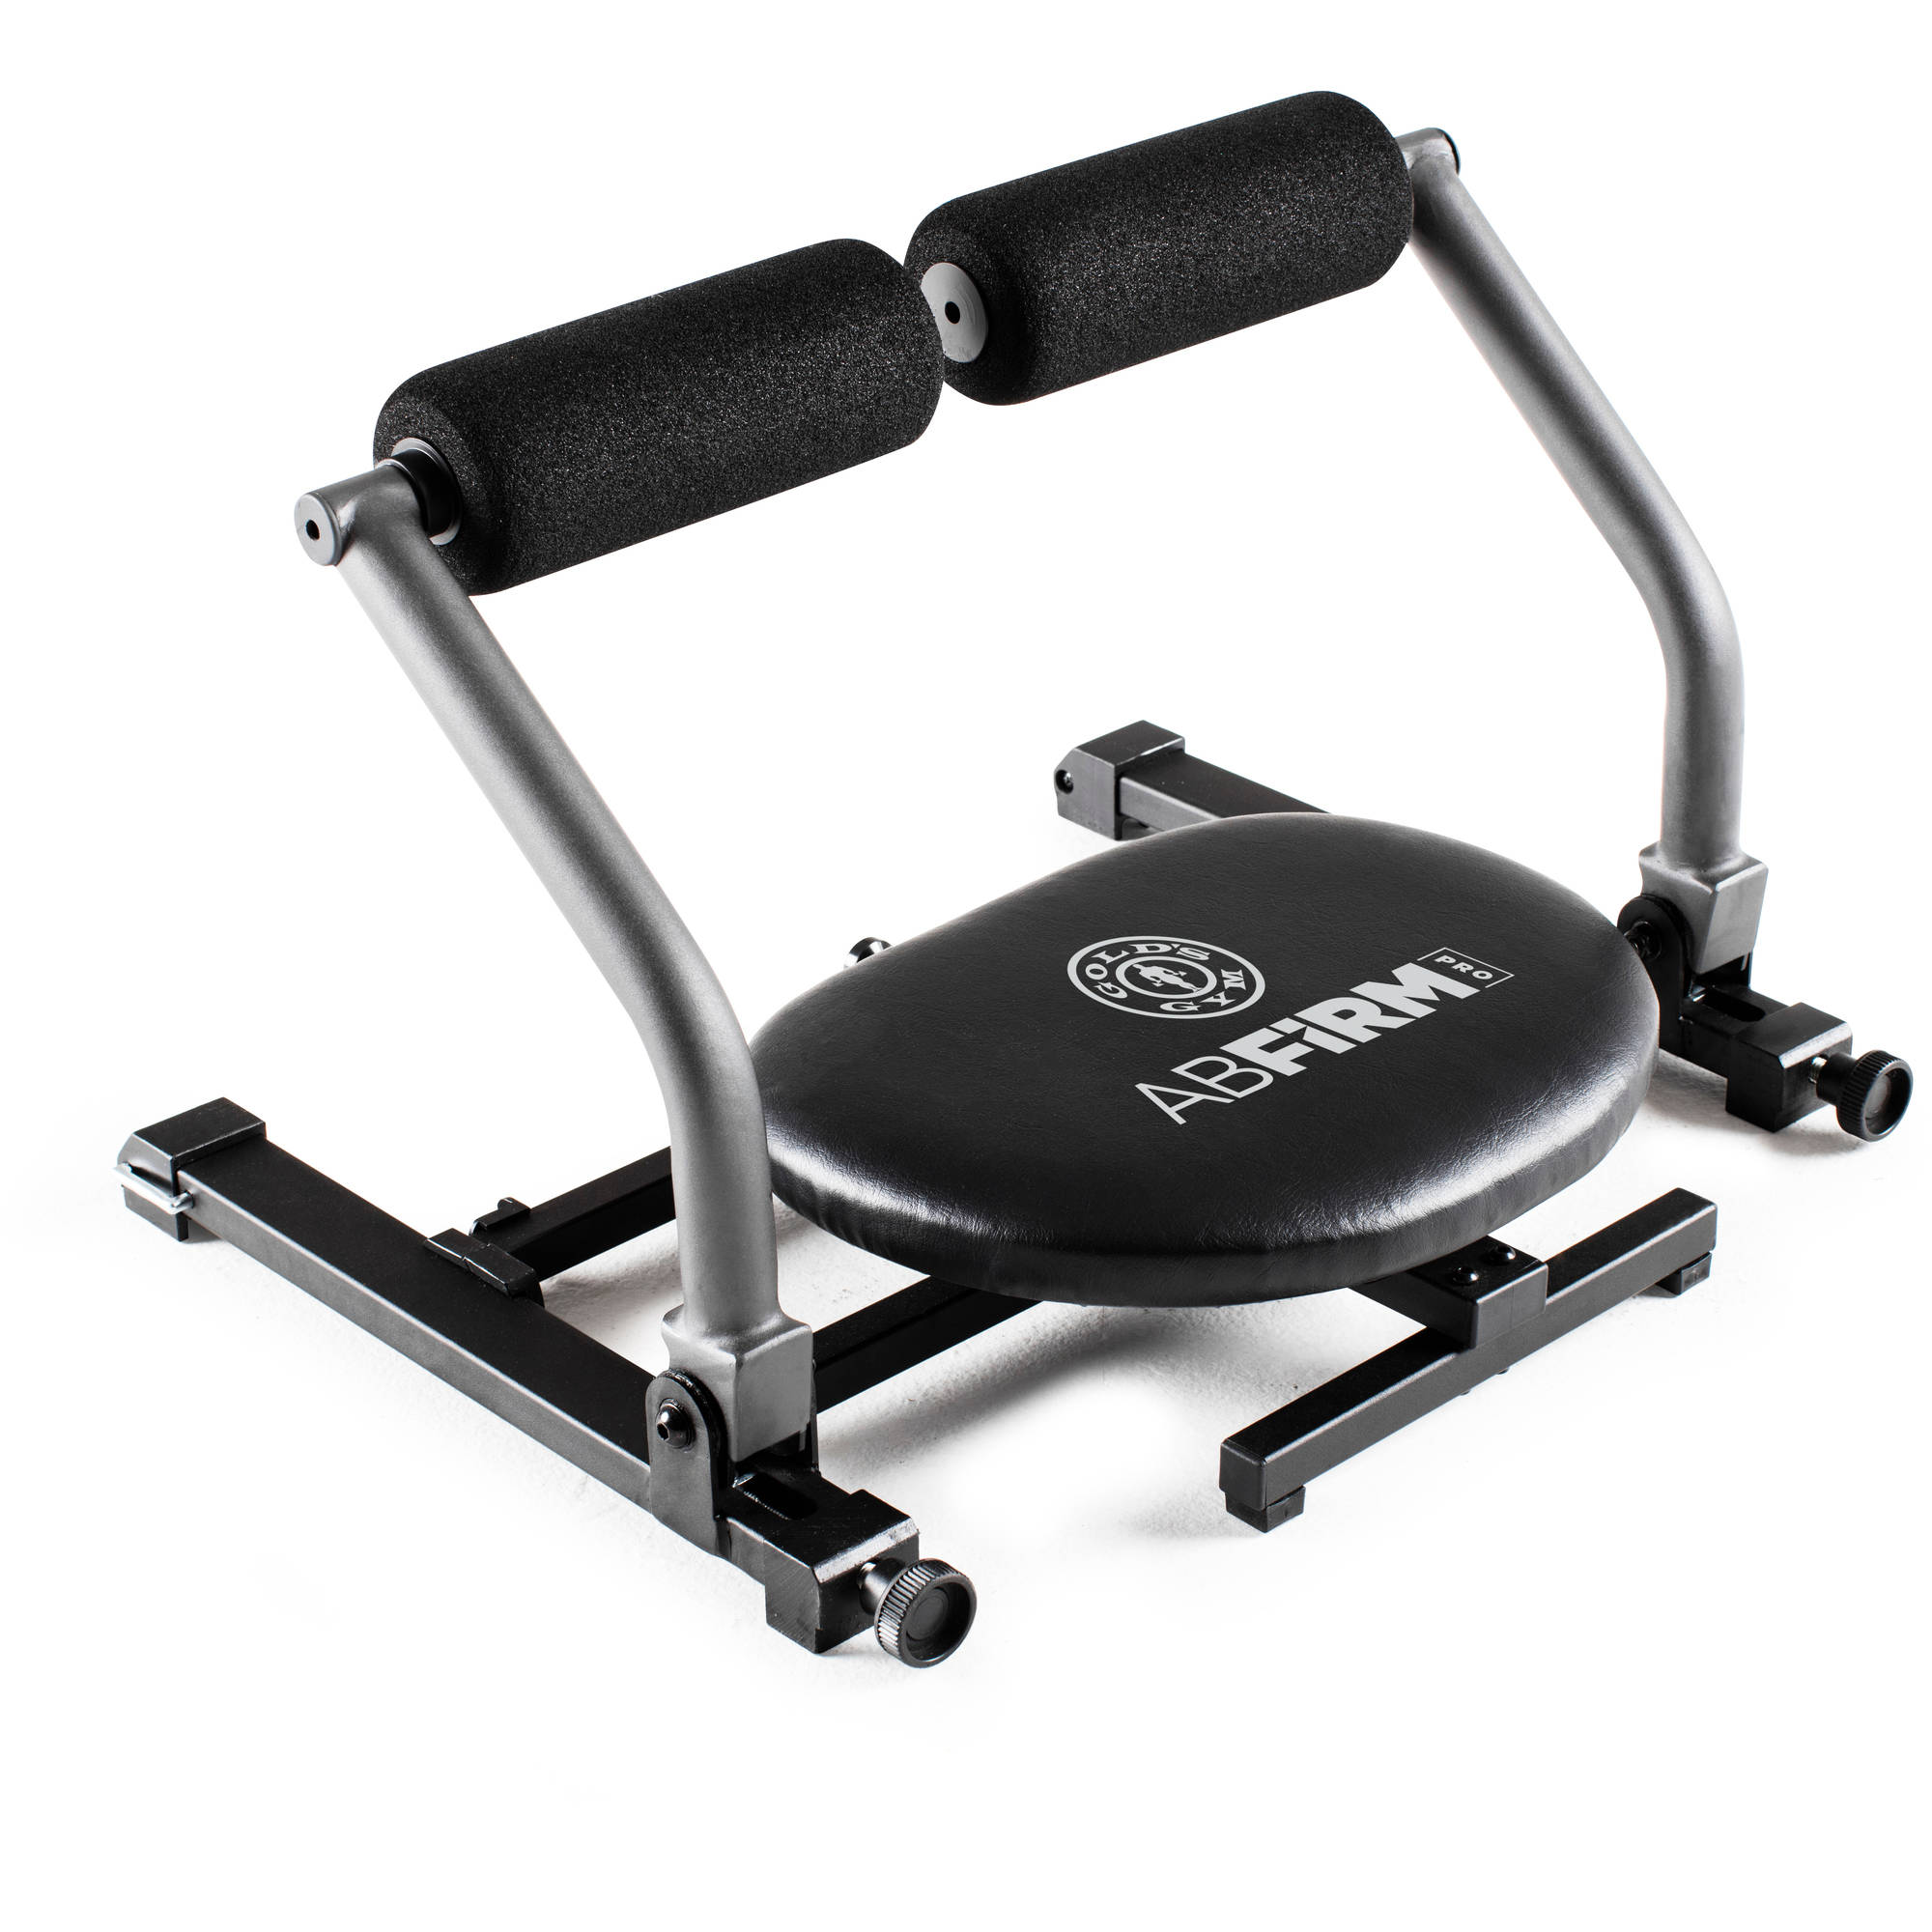 chair gym dvd set cover rentals fairfax va proform power 995i treadmill with free ab exercise machine walmart com